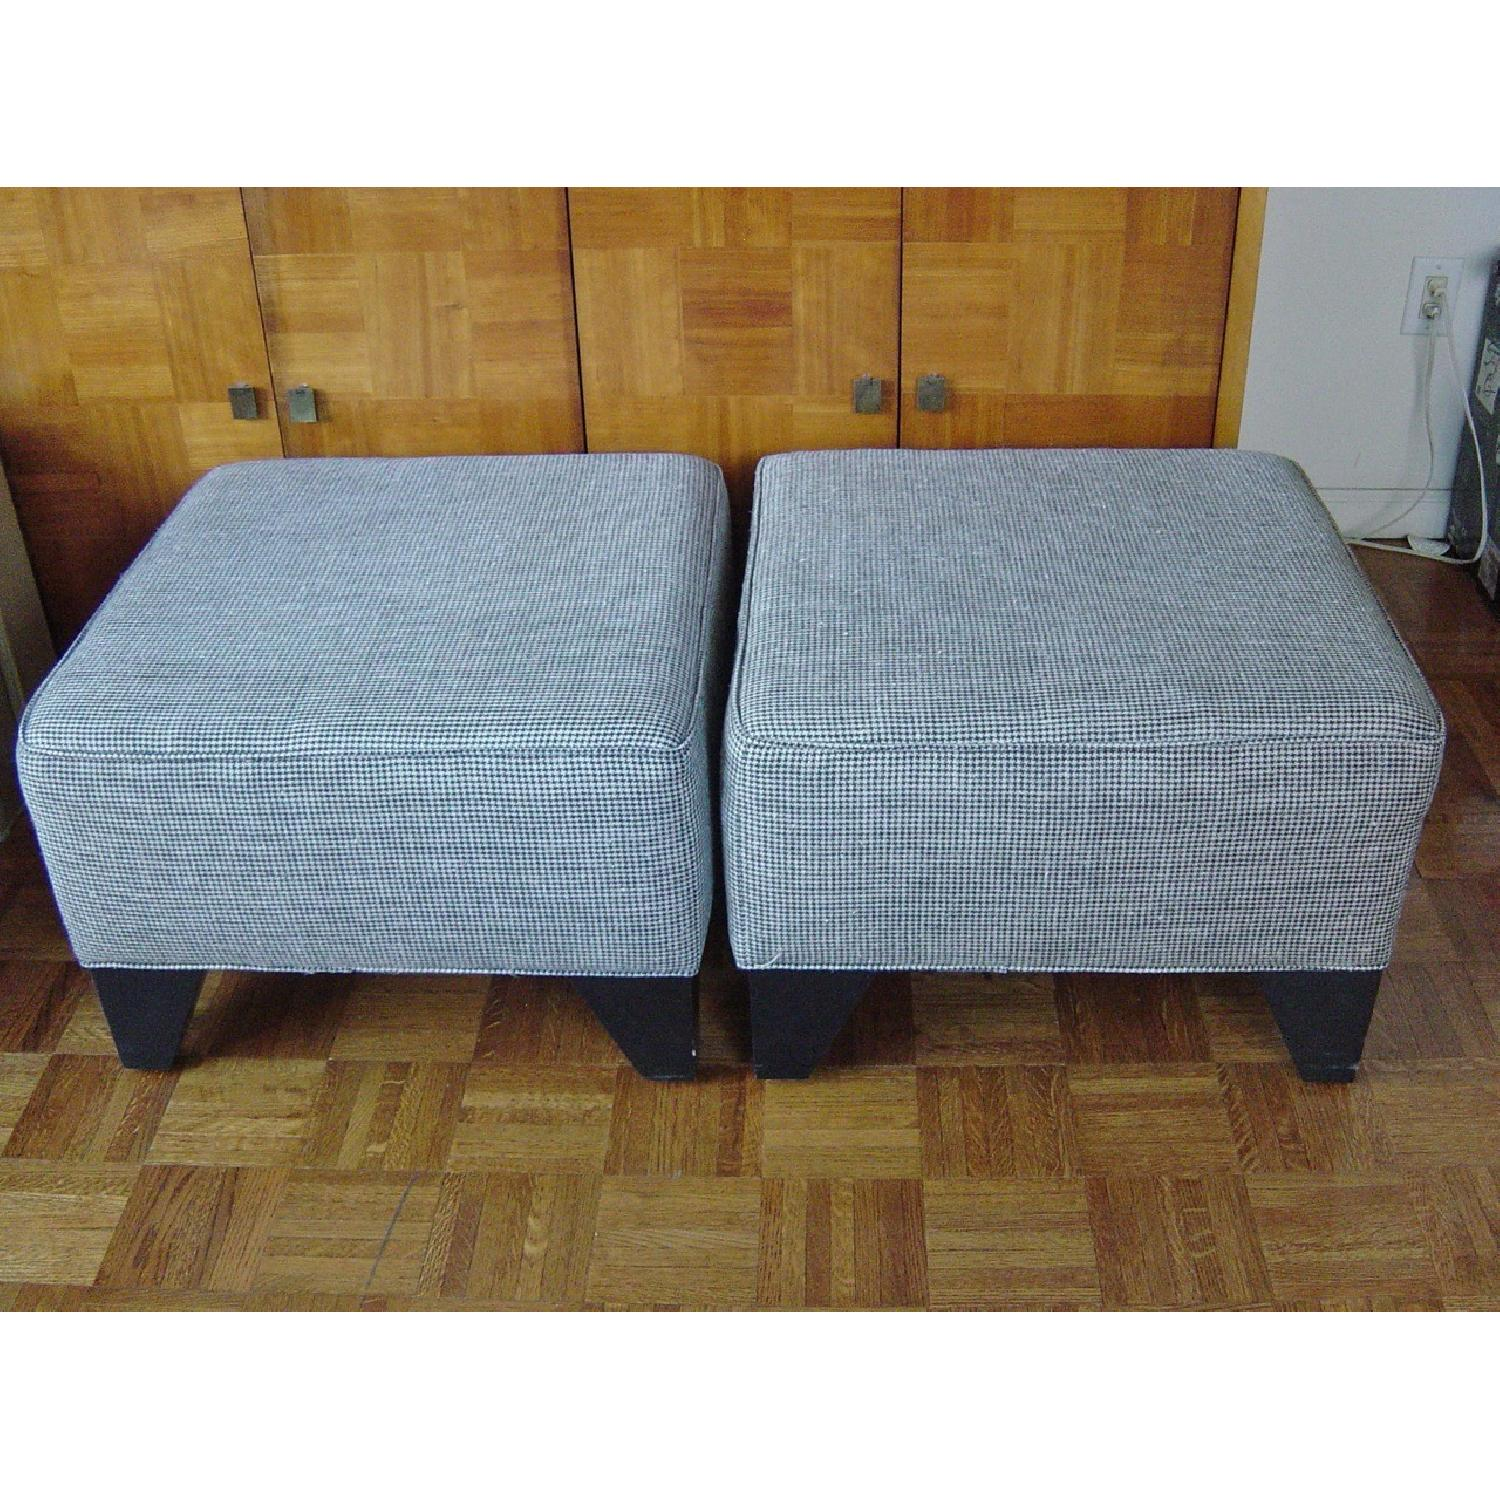 Houndstooth Upholstered Ottomans-0